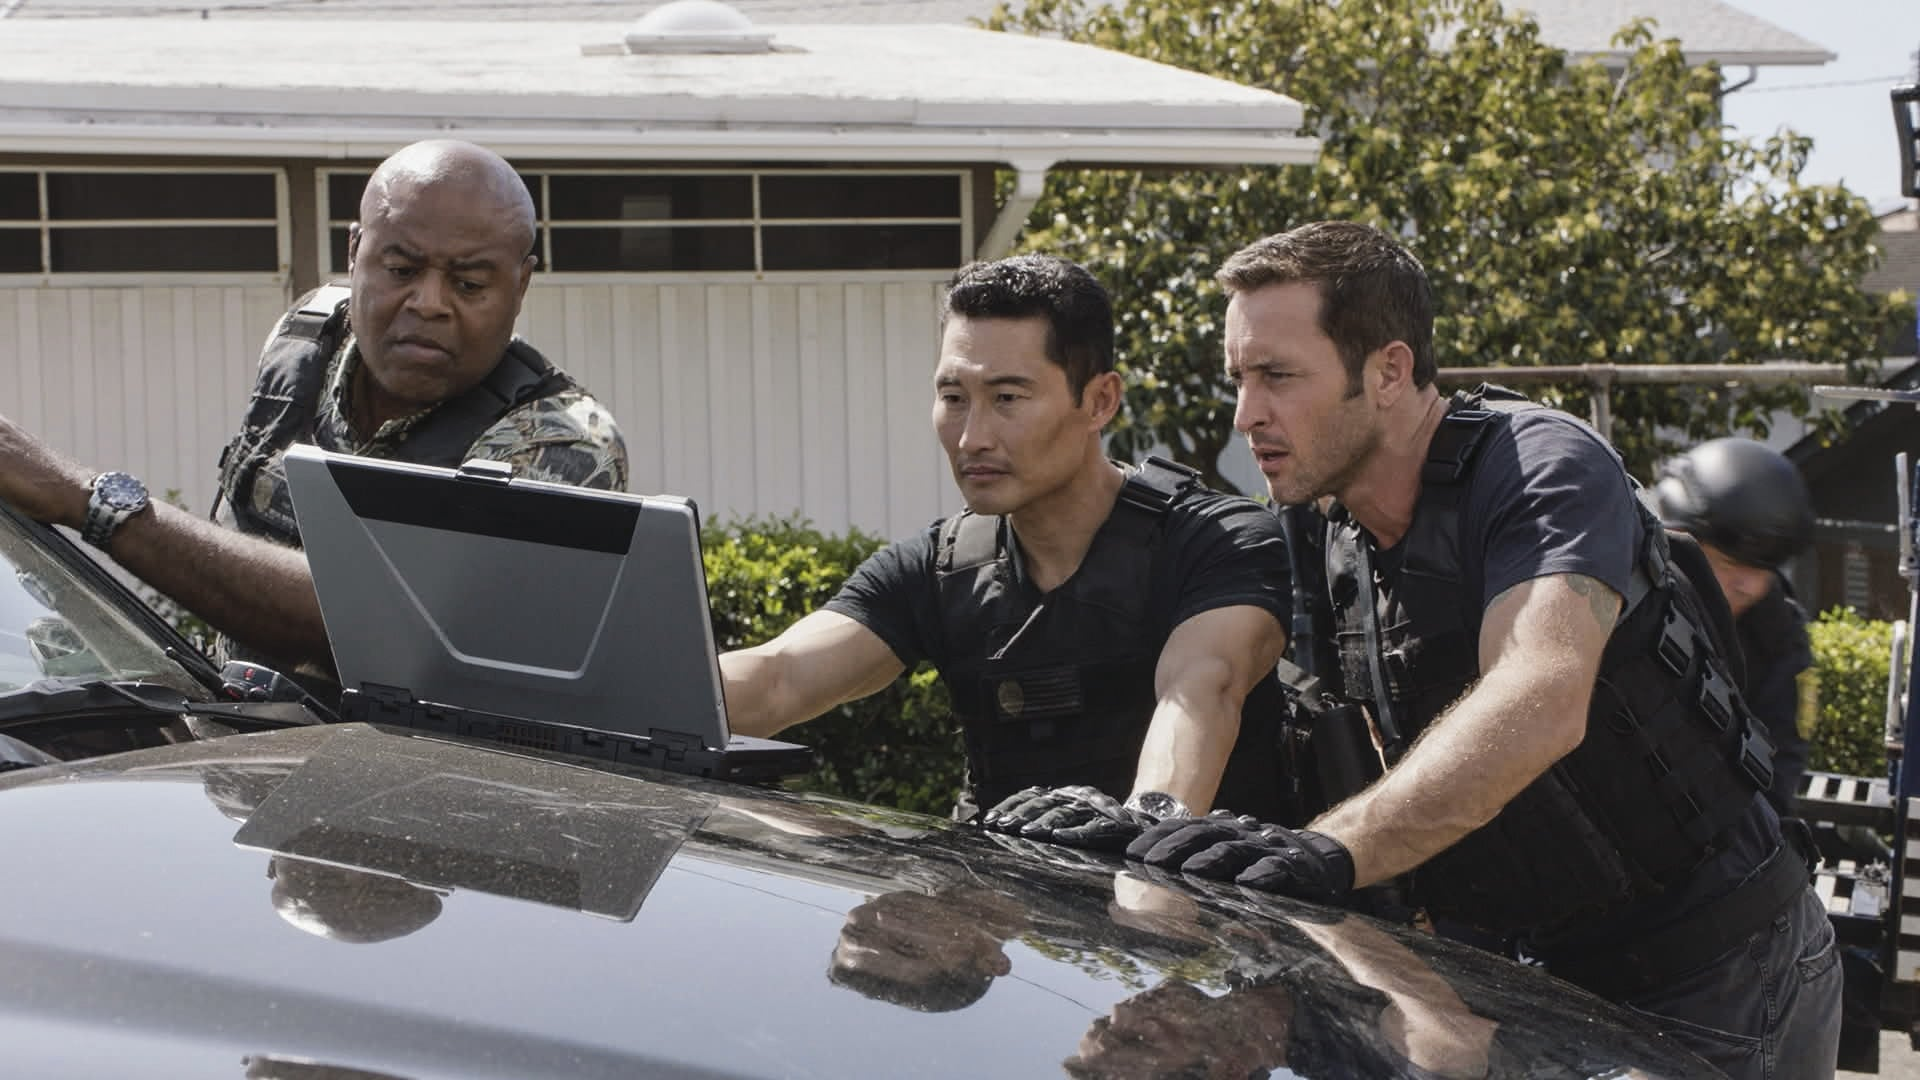 Hawaii Five-0 Season 7 :Episode 20  Huikau na makau a na lawai'a (The fishhooks of the fishermen become entangled)